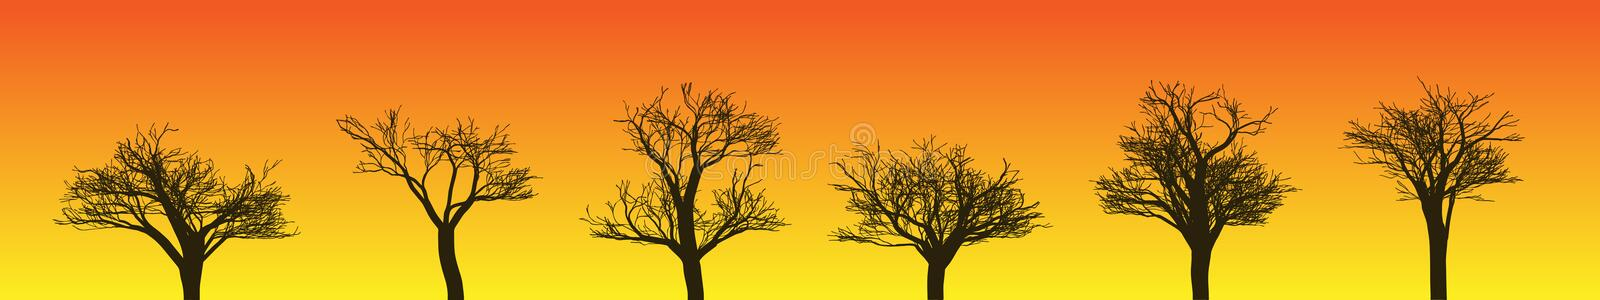 Download Tree Silhouettes stock vector. Image of illustration - 14582090